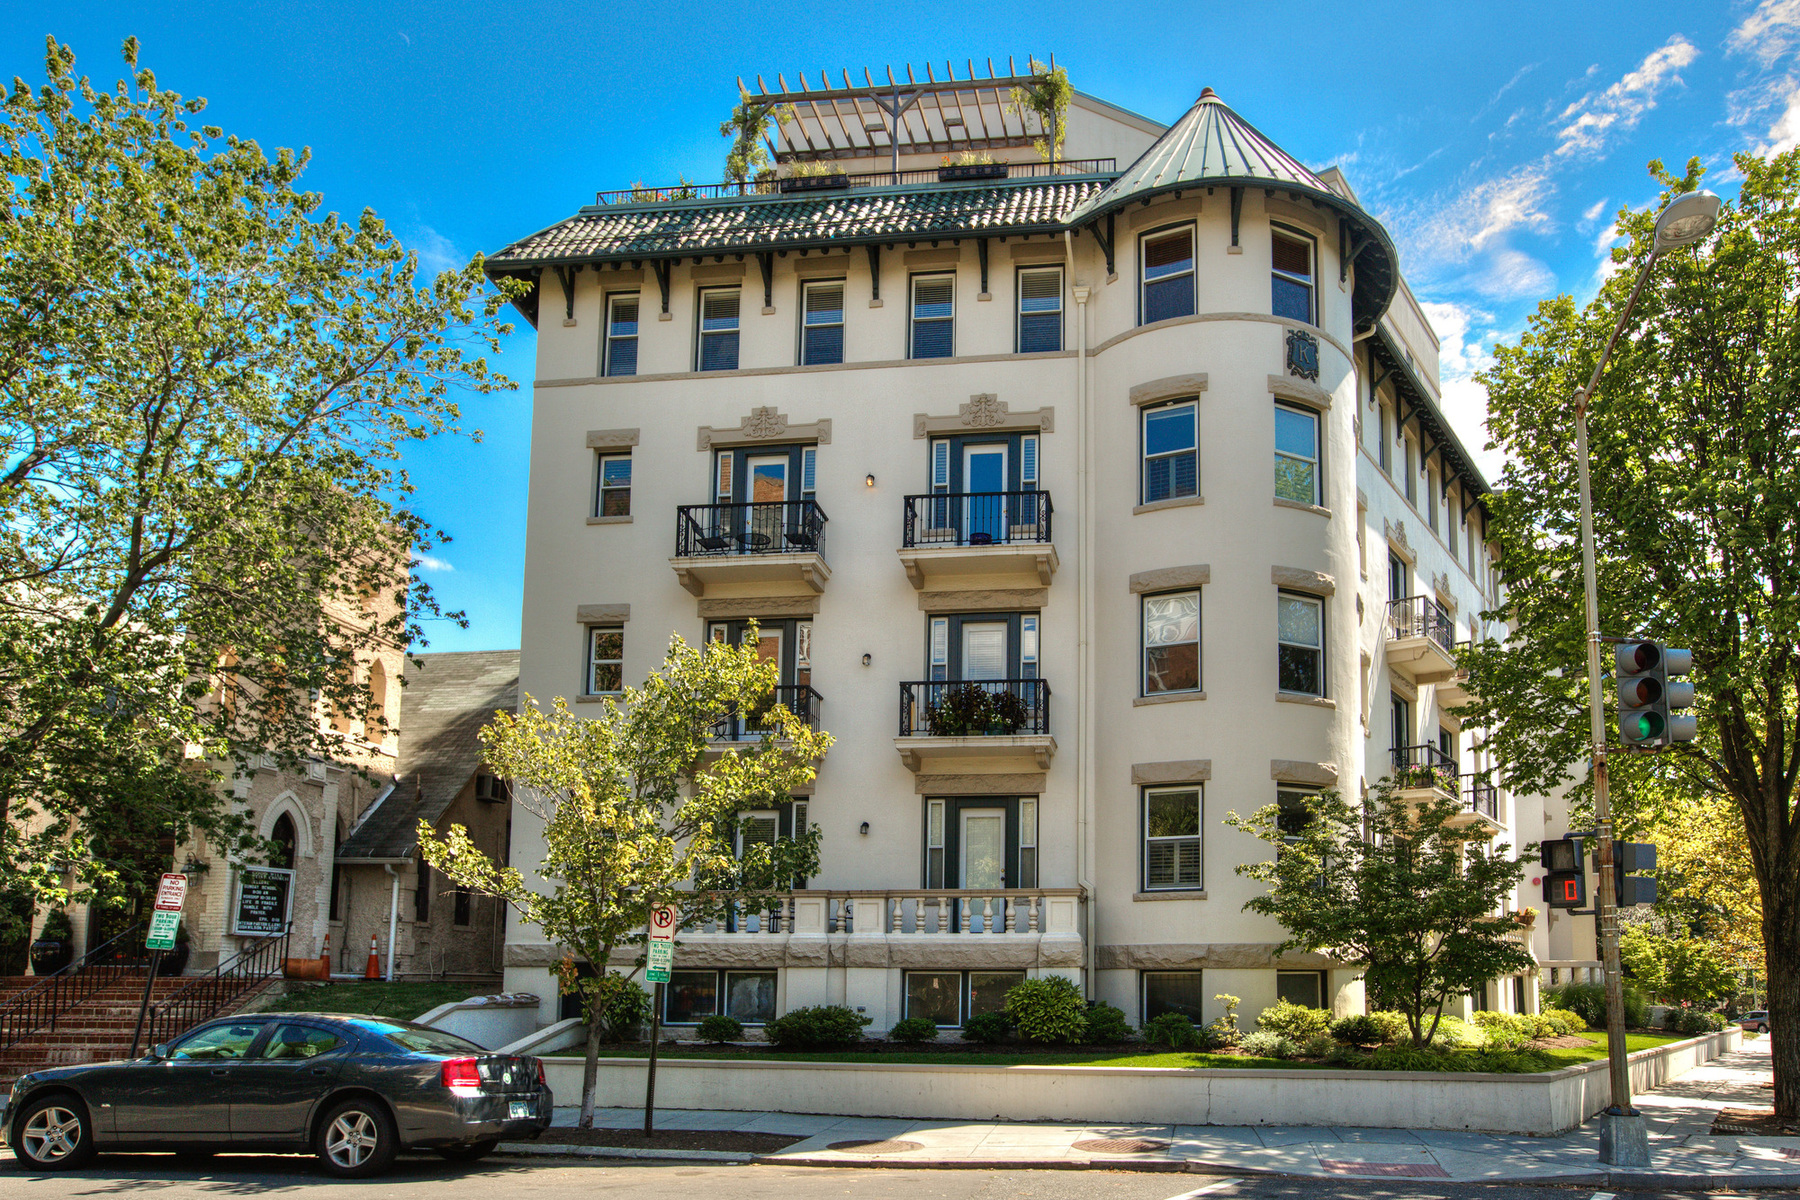 Condominium for Sale at Kalorama 1882 Columbia Road Nw 303 Washington, District Of Columbia 20009 United States